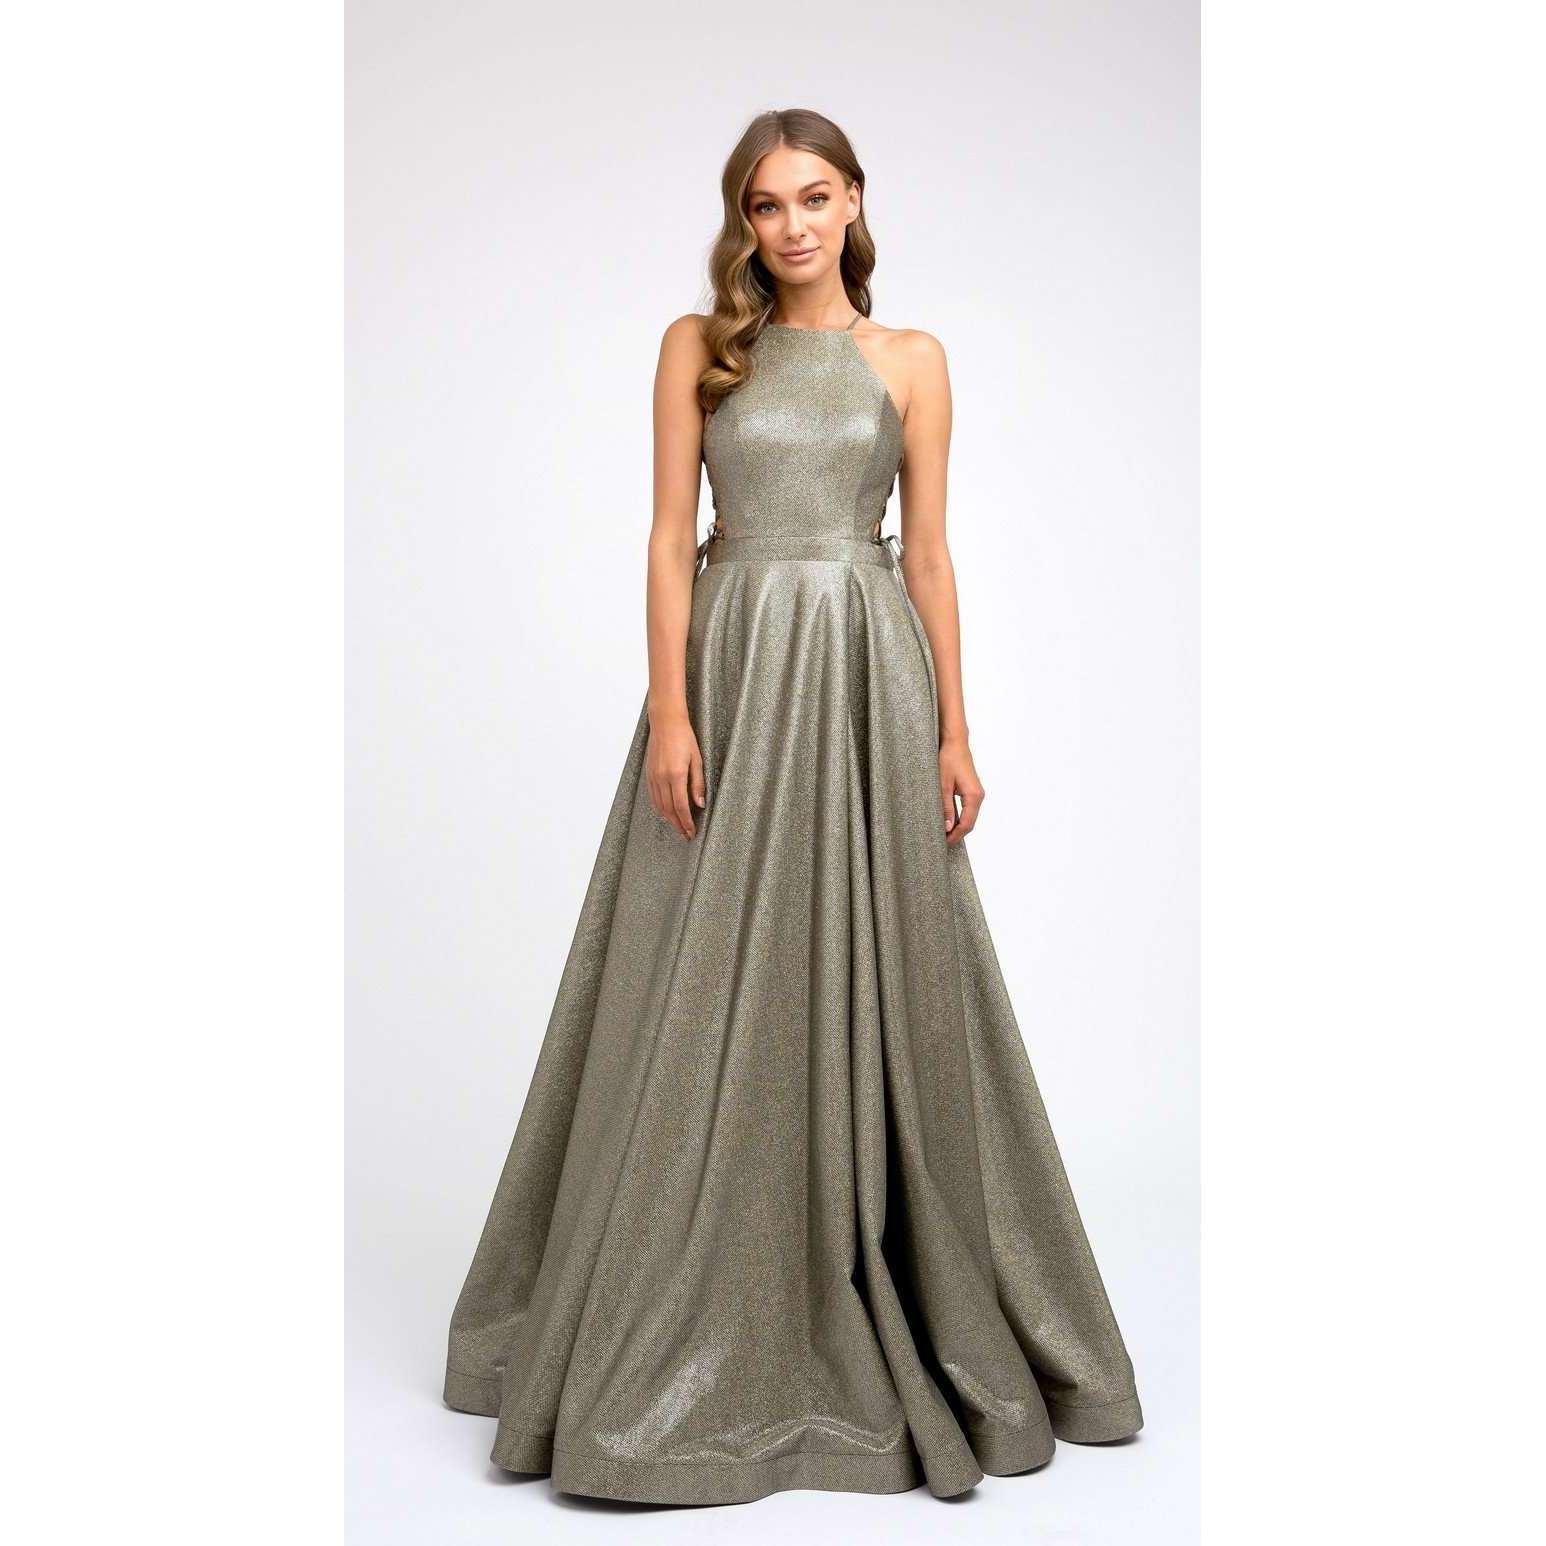 Metallic High cut halter neckline Prom Gown 241 - Julietdresses